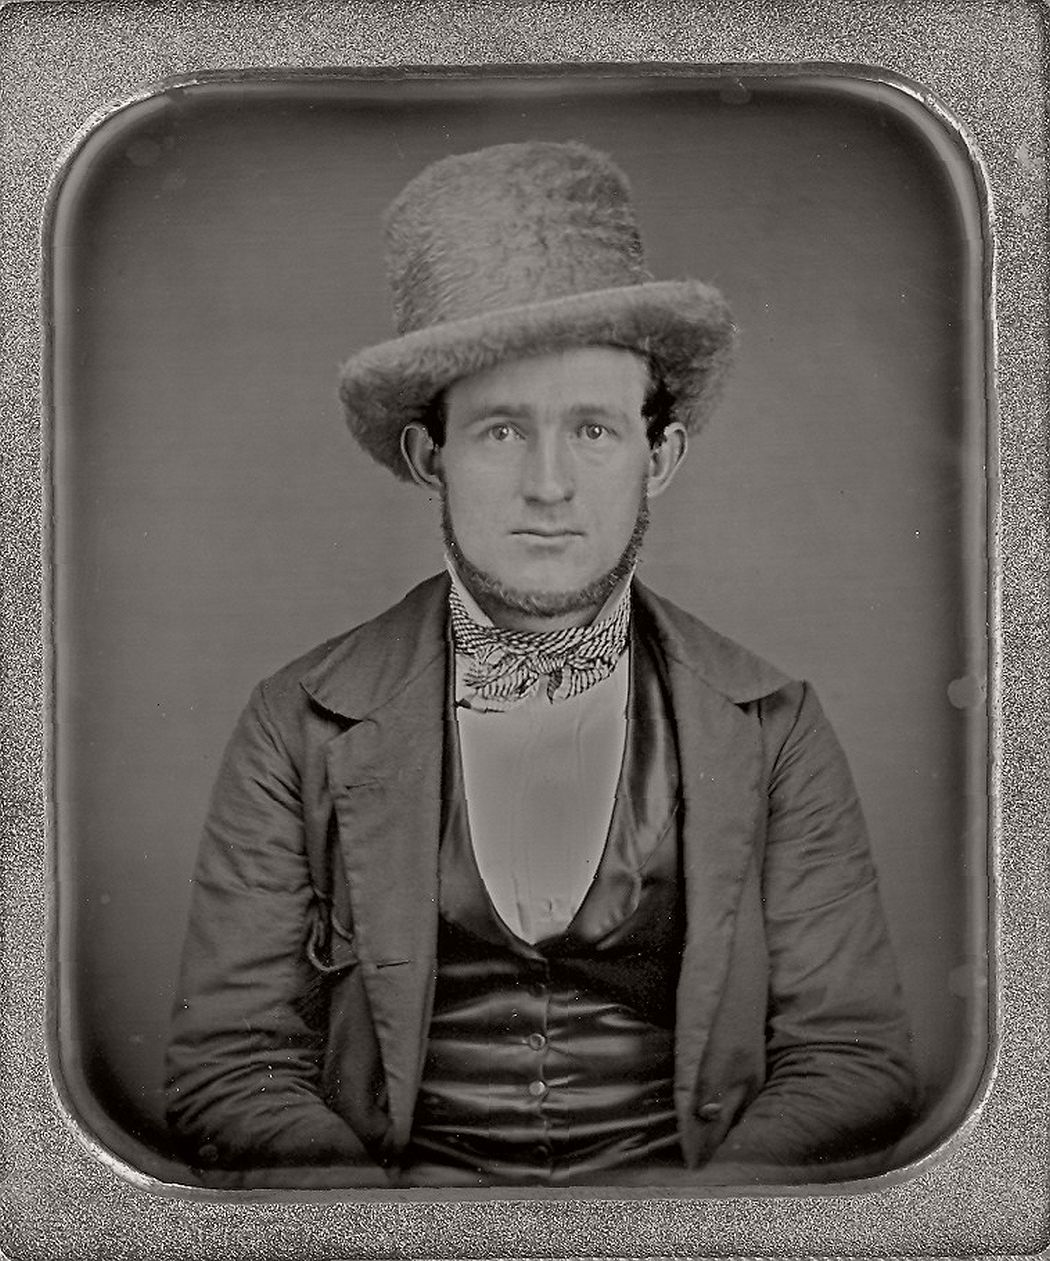 victorian-era-daguerreotype-of-men-in-hat-1850s-xix-century-06